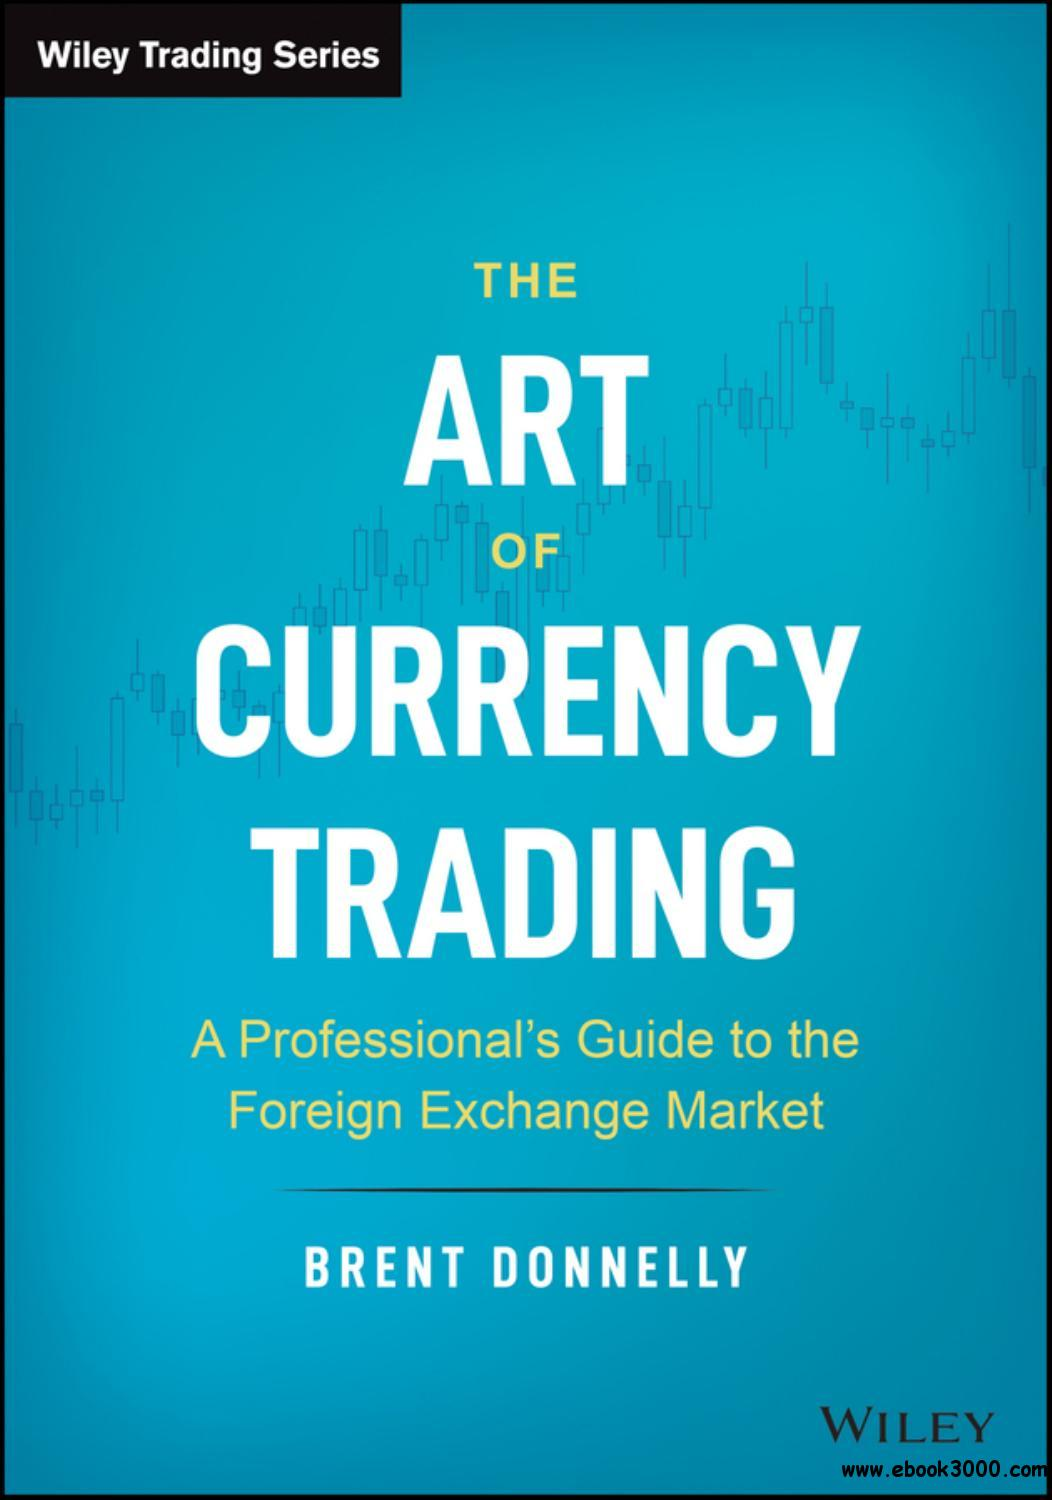 Forex Currency Traders: What Are They?